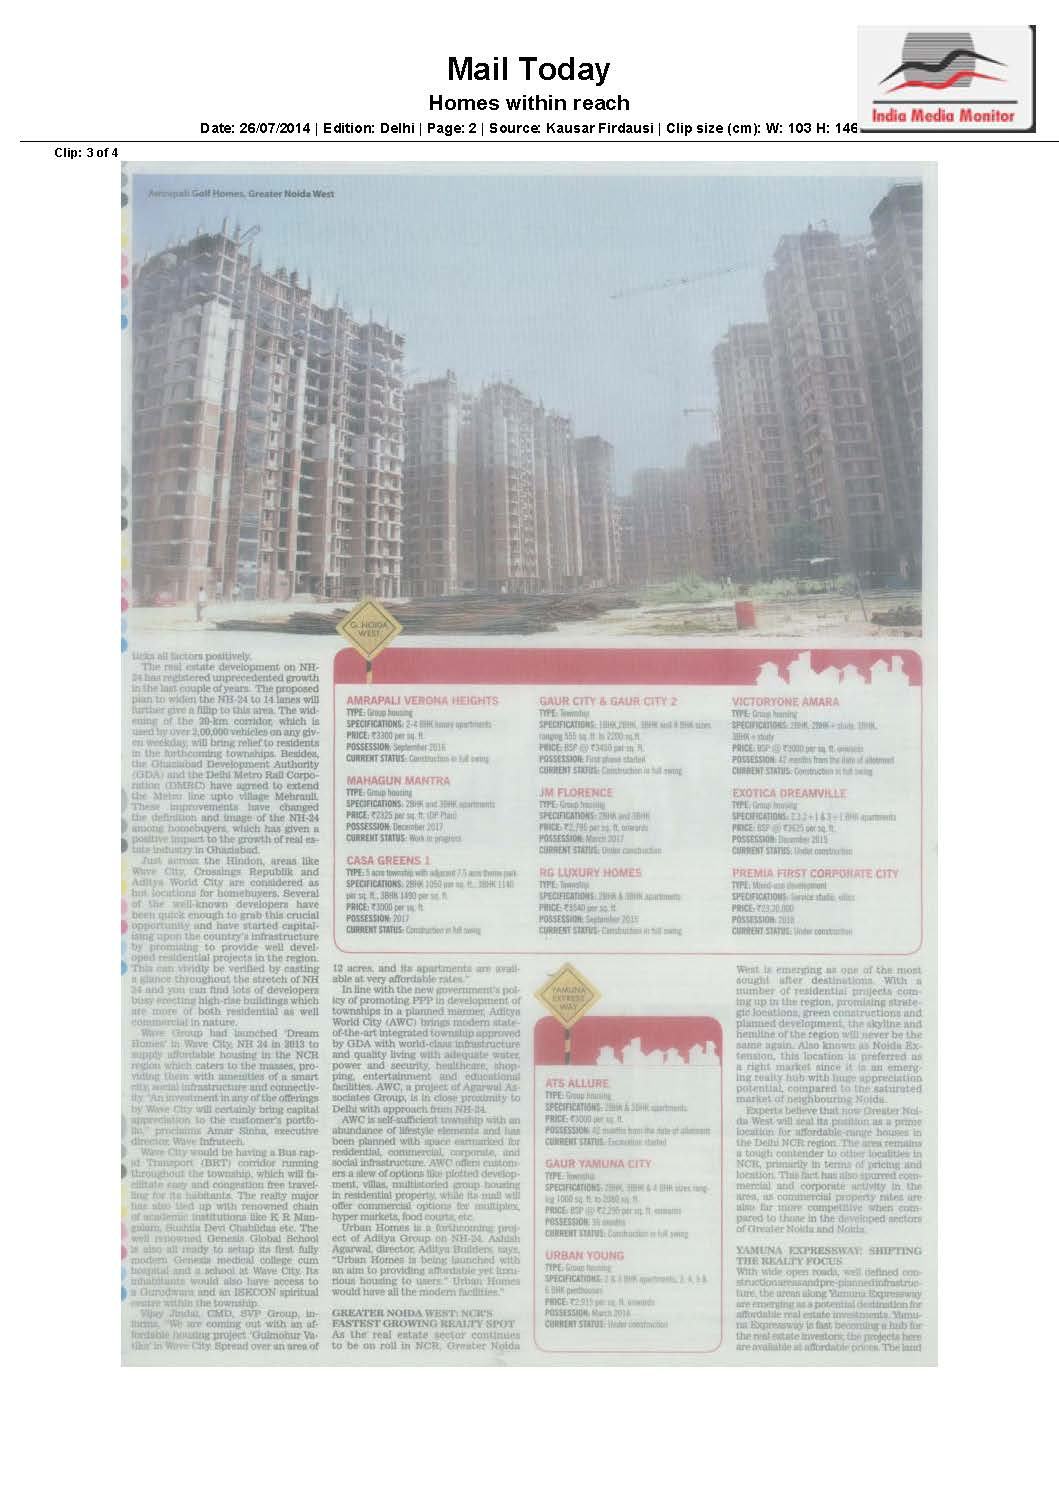 Mr. Amar Sinha, ED, Wave Infratech gets quoted on affordable dream housing in Delhi-NCR at Wave City (Contd2...)